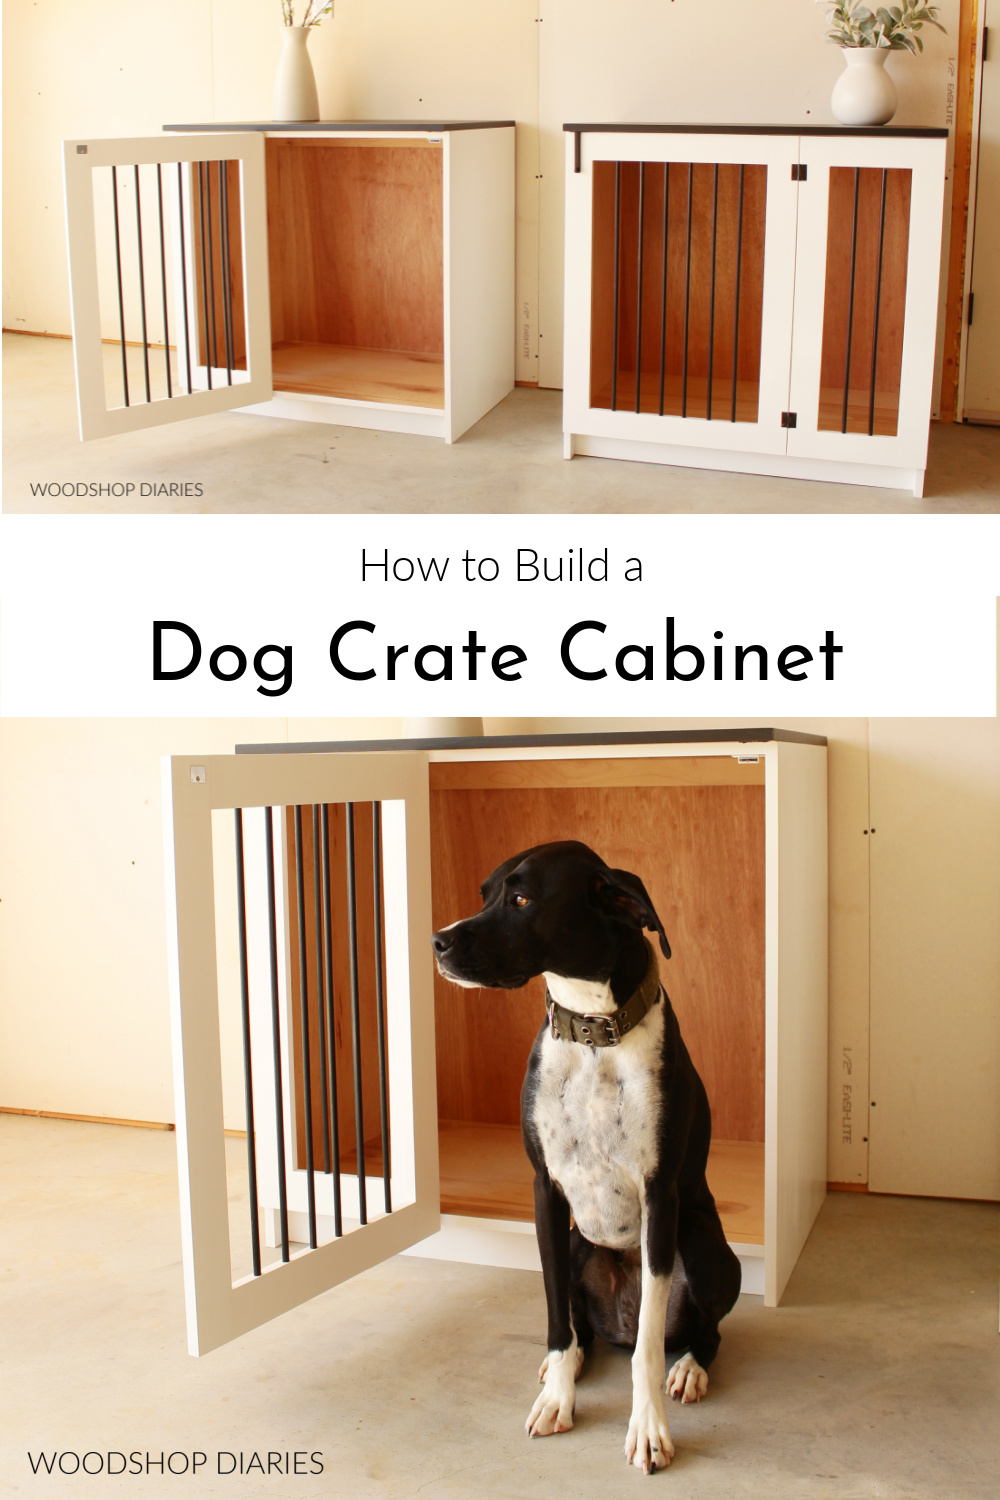 """Pinterest collage image showing pair of black and white dog crate cabinets at top and dog in front of crate at bottom with text """"how to build a dog crate cabinet"""""""